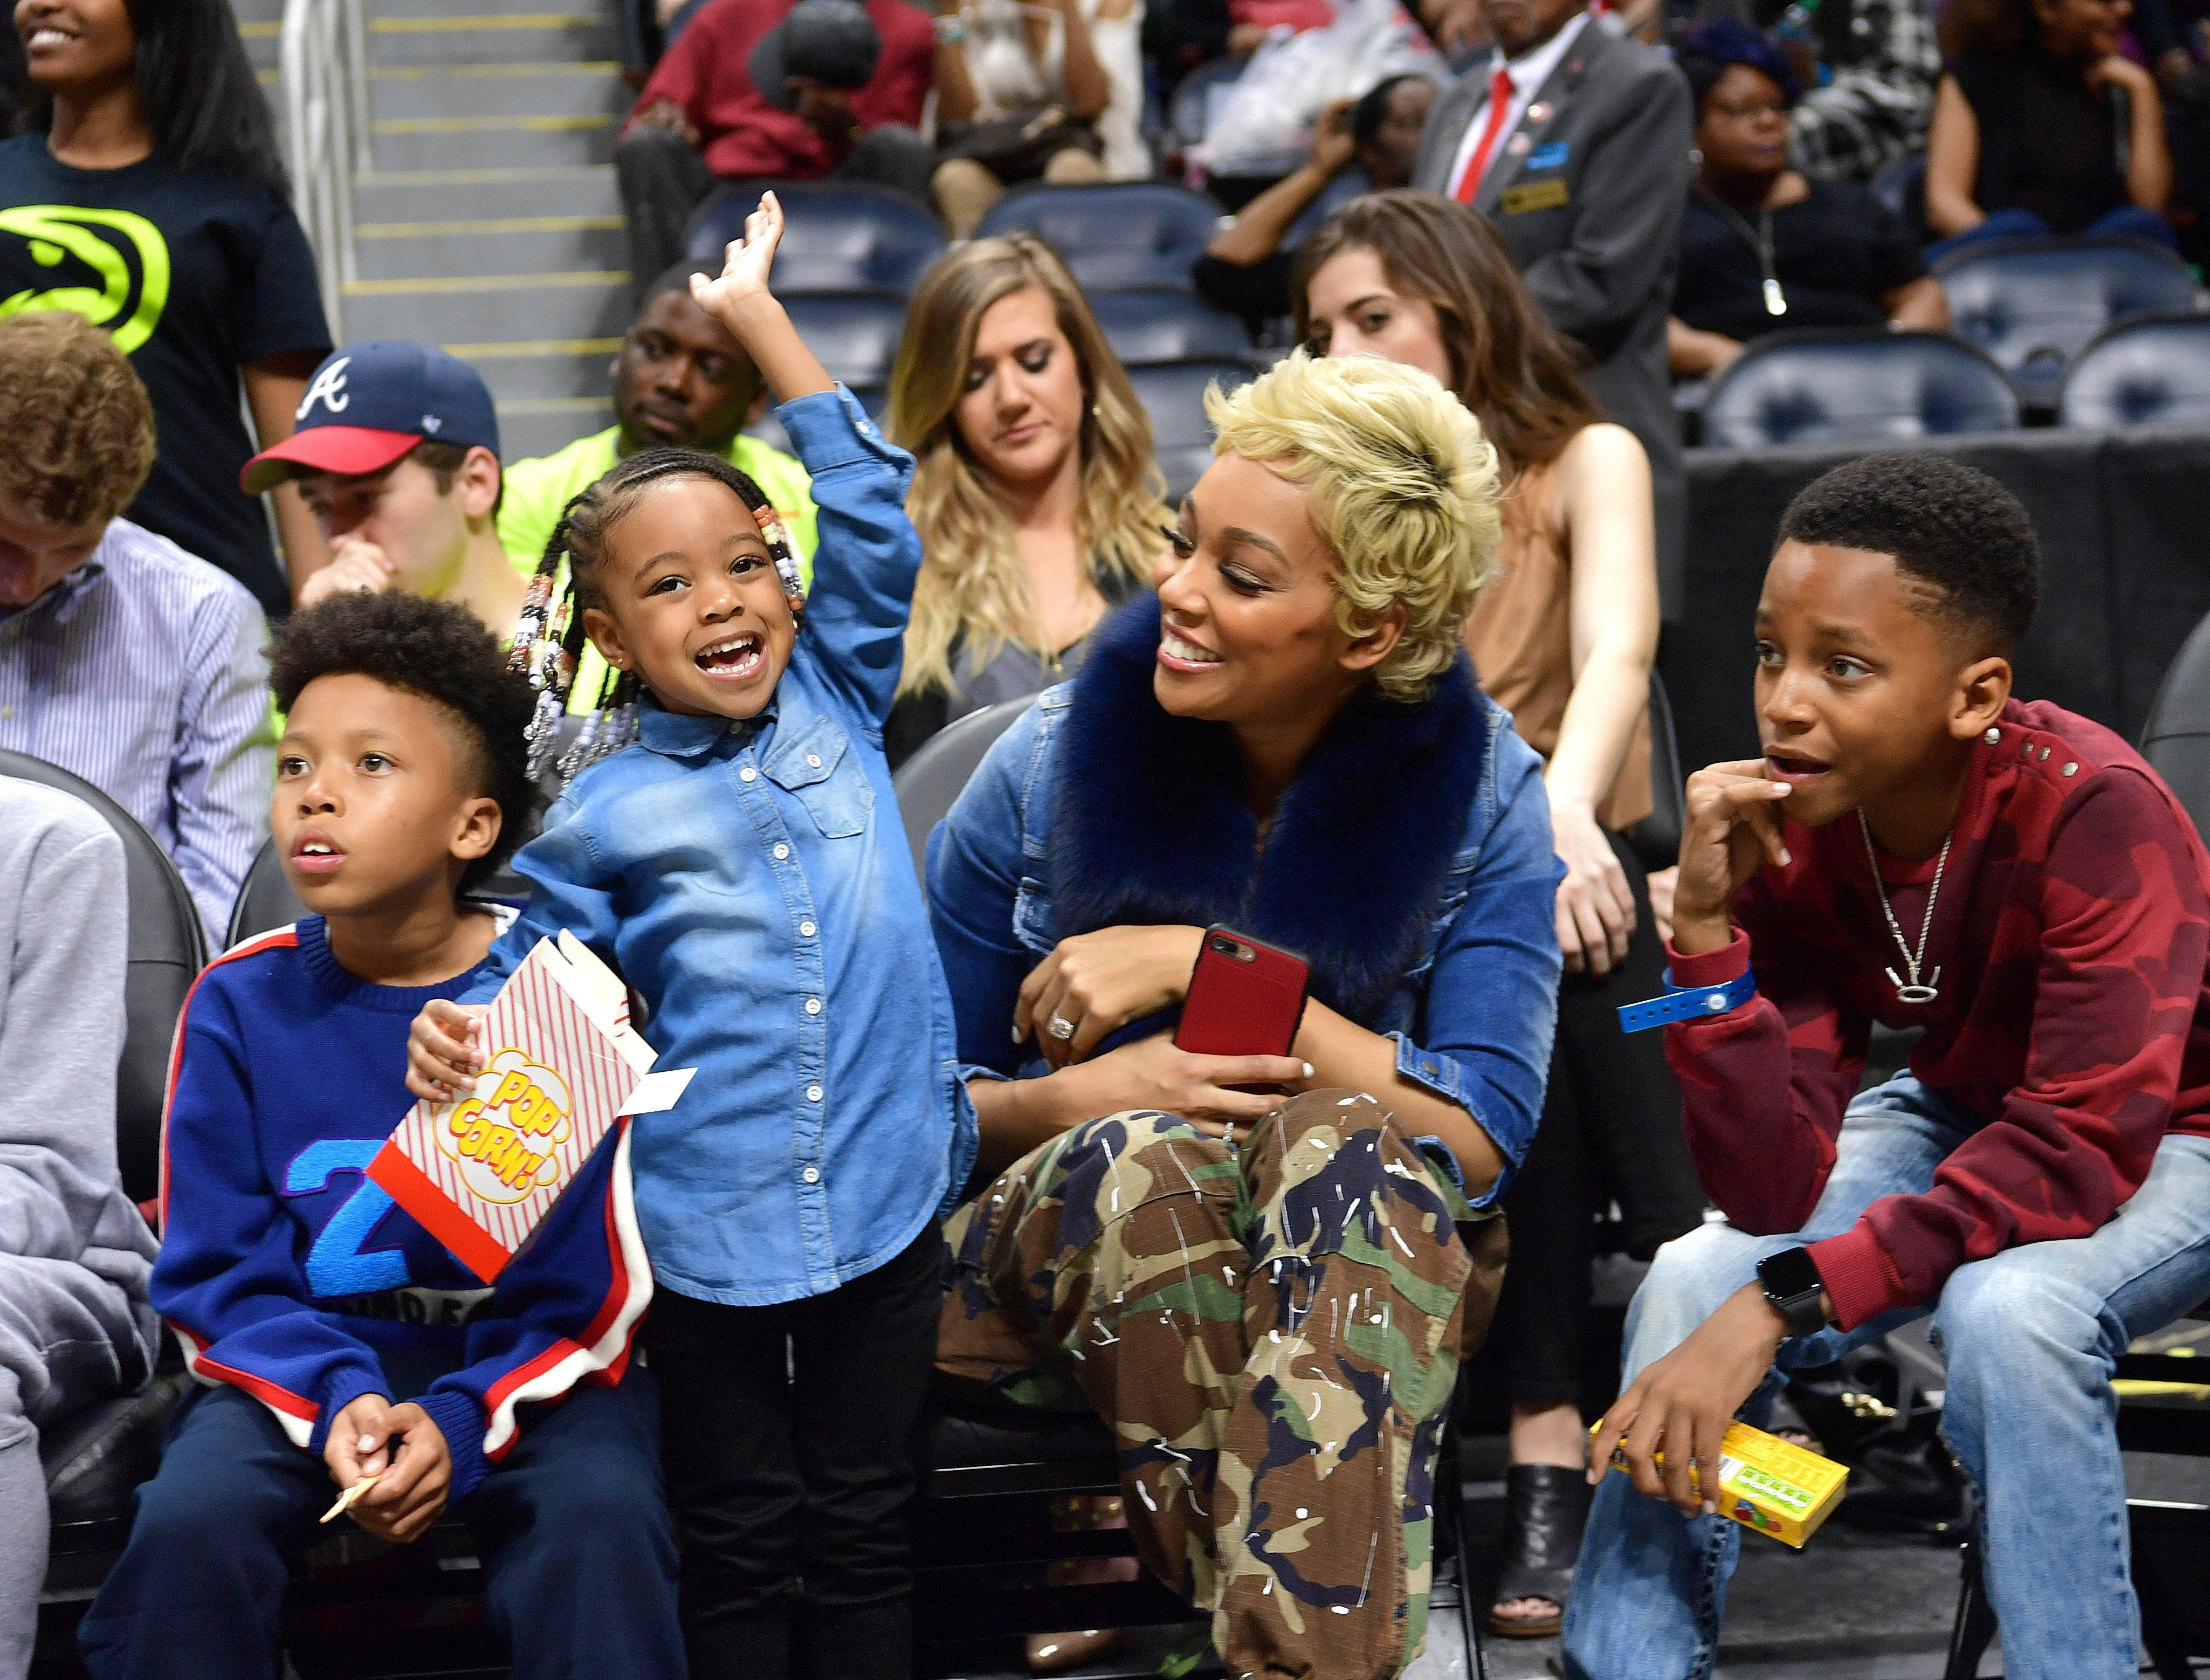 Monica & her kids (L-R) Romelo, Laiyah & Rodney at a basketball game in Atlanta, Georgia on March 1, 2017. | Photo: Getty Images